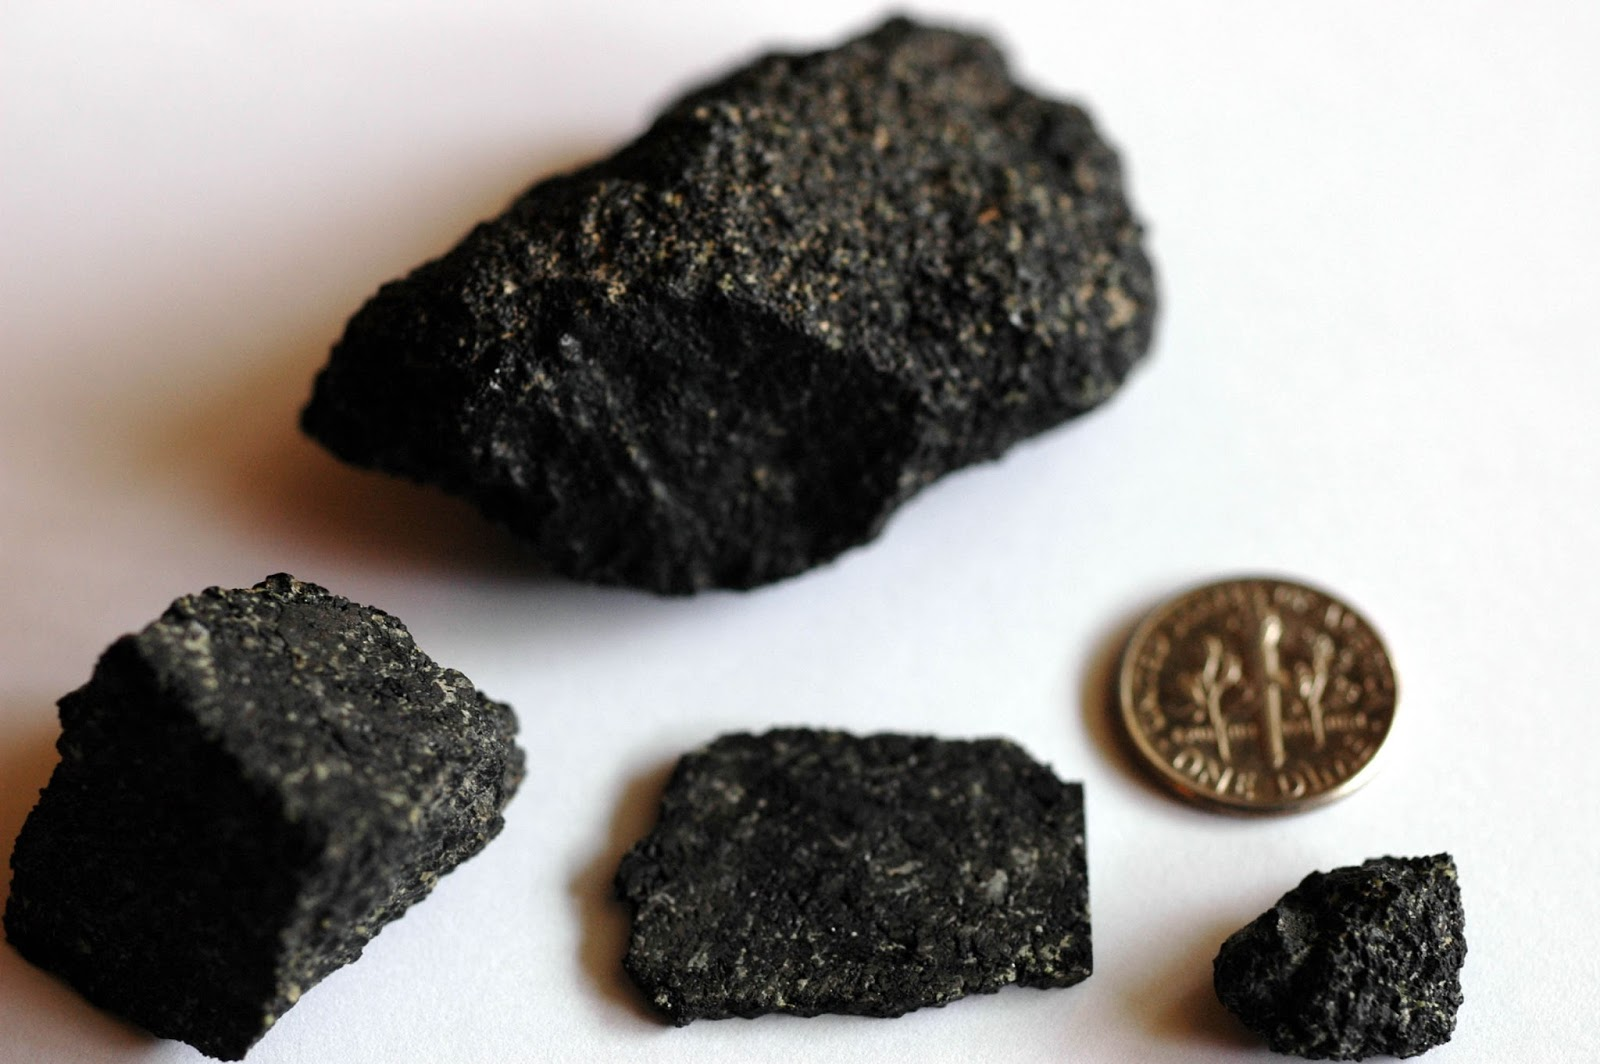 Chassignite; one of three Martian meteorite types analyzed by Dauphas and Pourmand in 2011. The others being Shergottite, and Nakhlite. These are not the exact samples used in the study.    Photo Credit: Bruno Fectay & Carine Bidaut